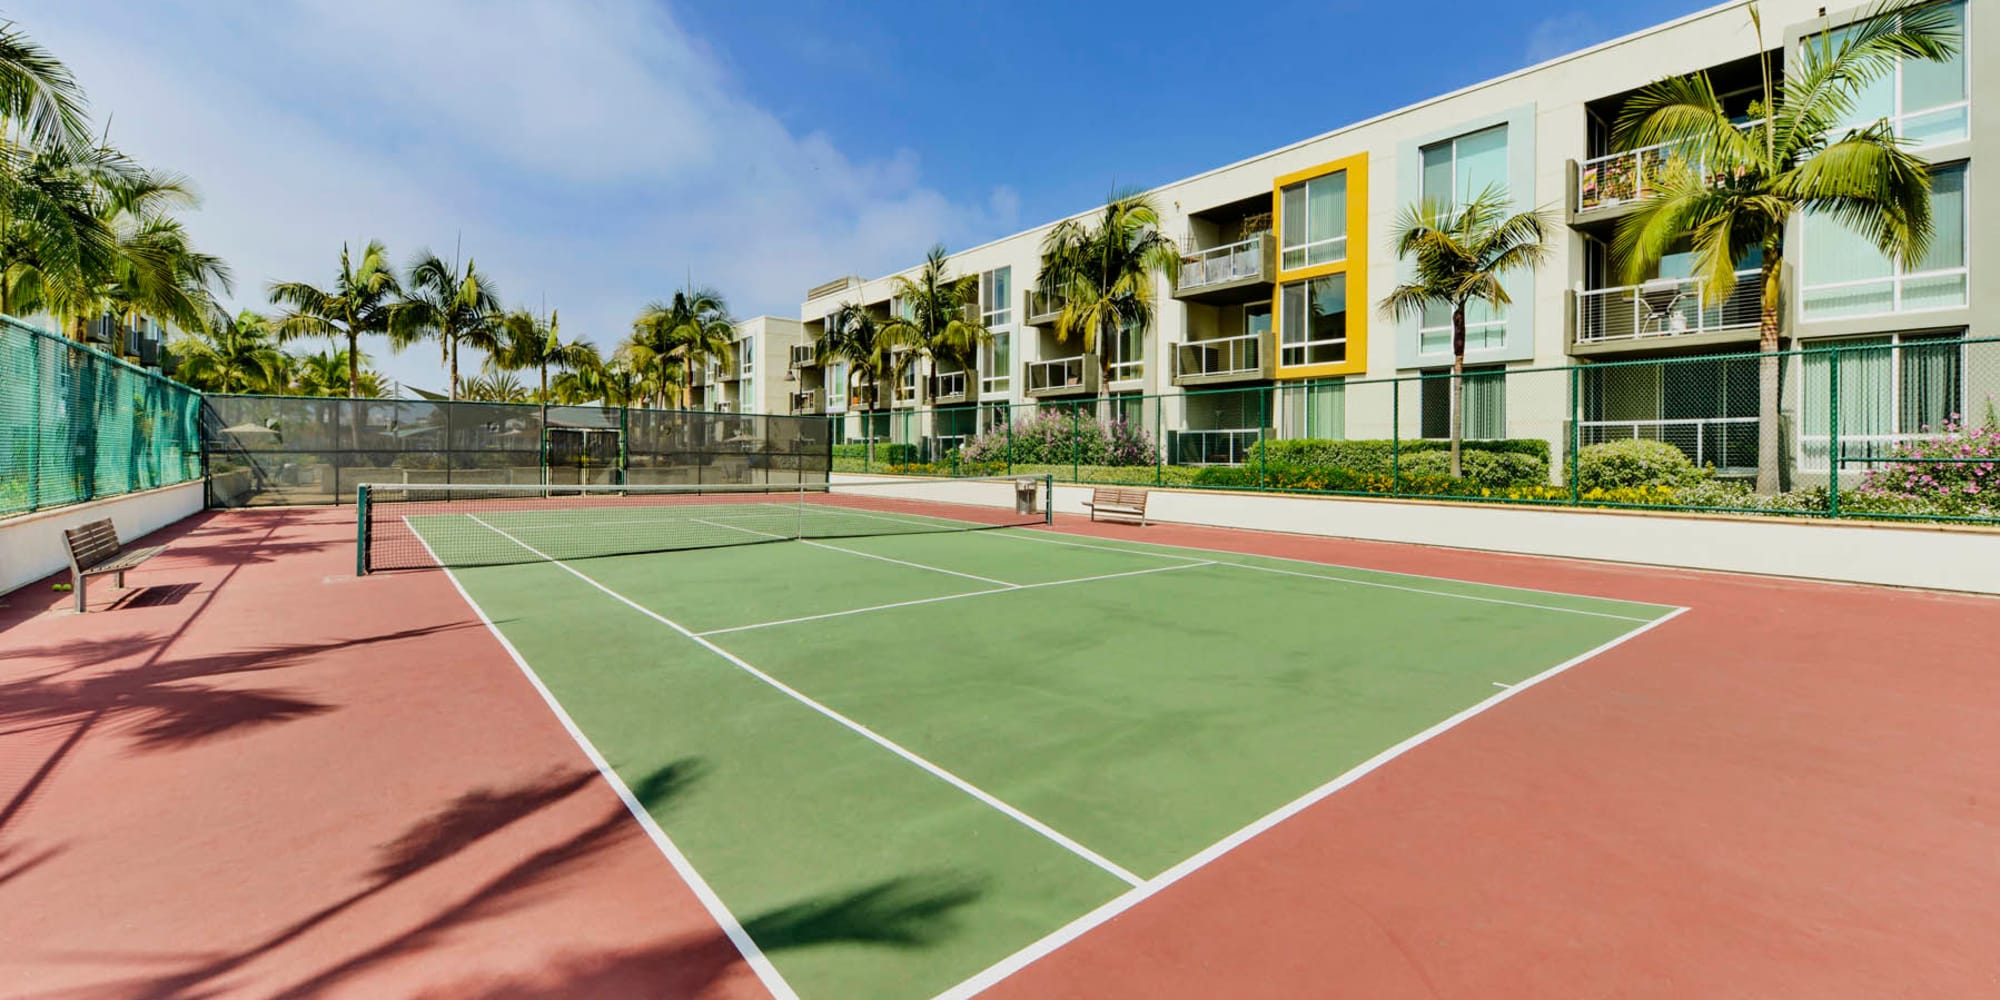 Onsite tennis courts on another beautiful day at The Tides at Marina Harbor in Marina Del Rey, California